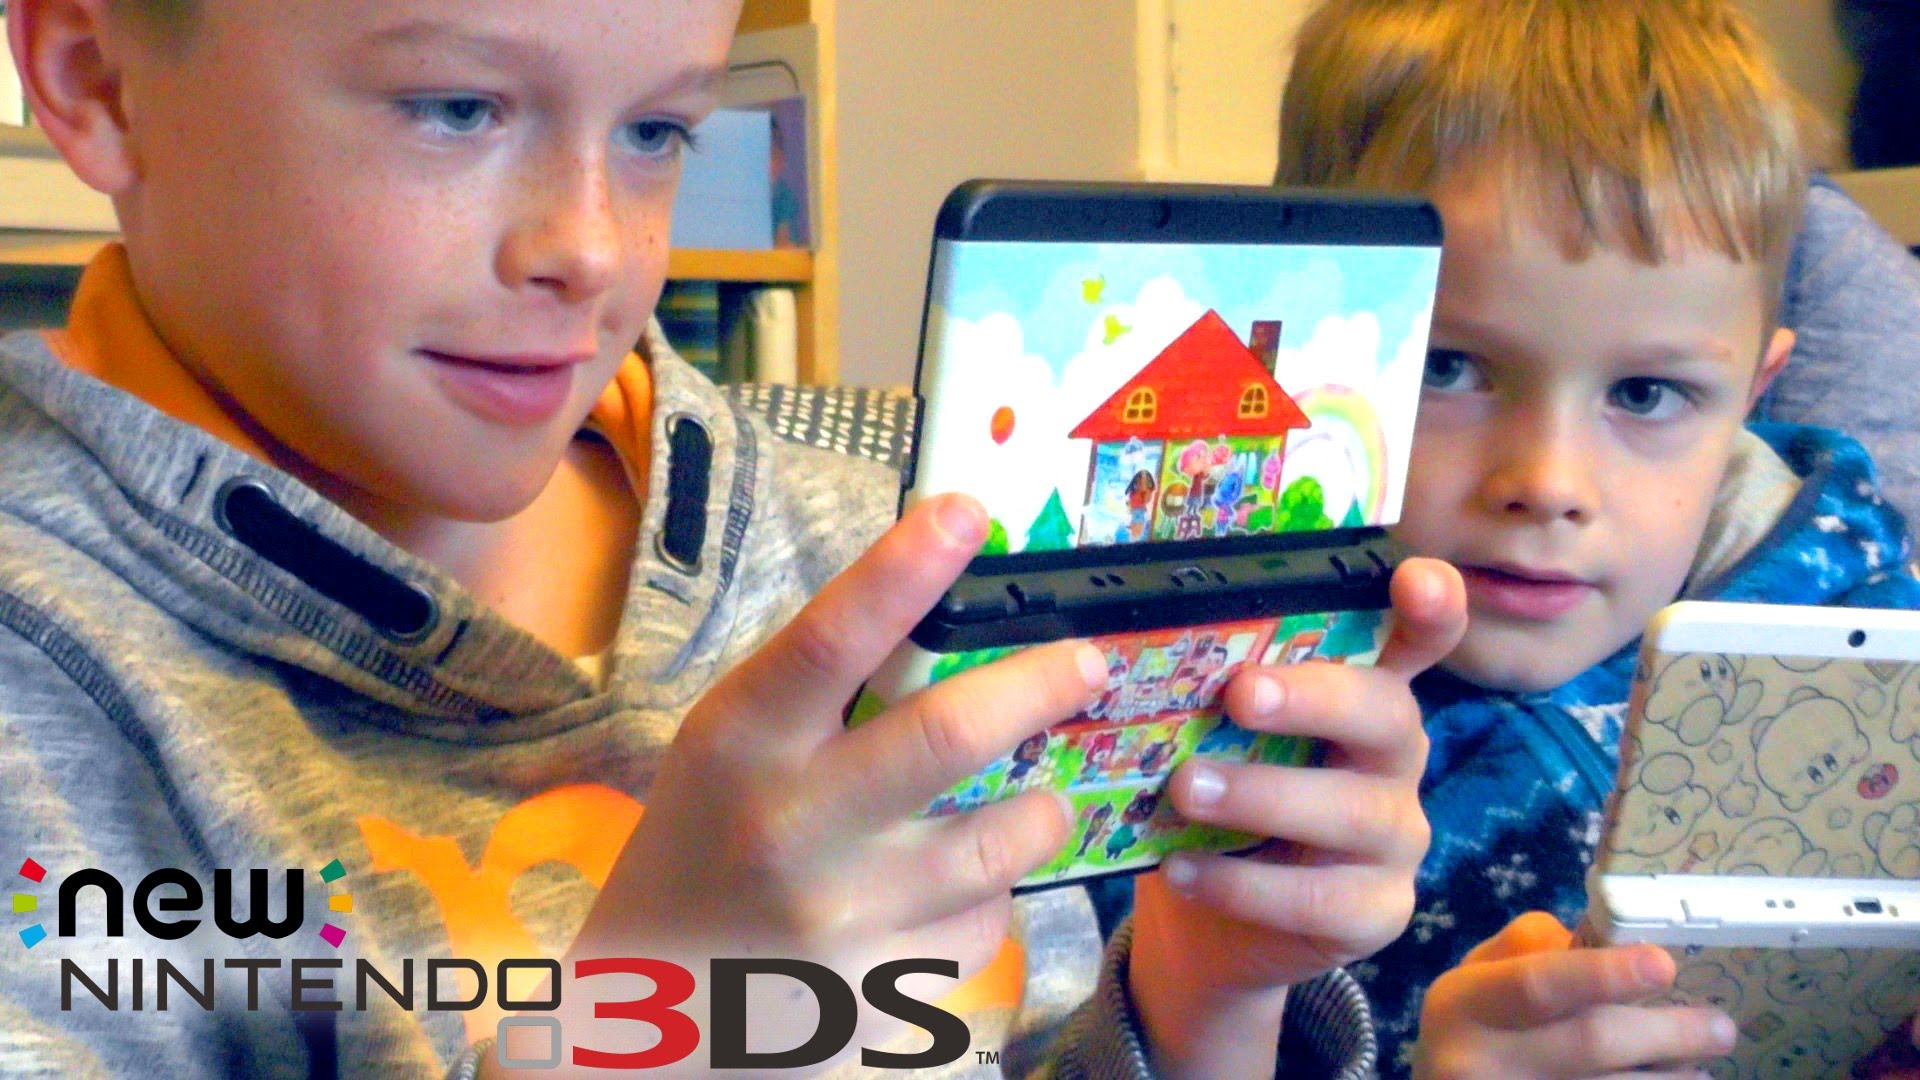 New Nintendo 3DS – Top 5 Family Games